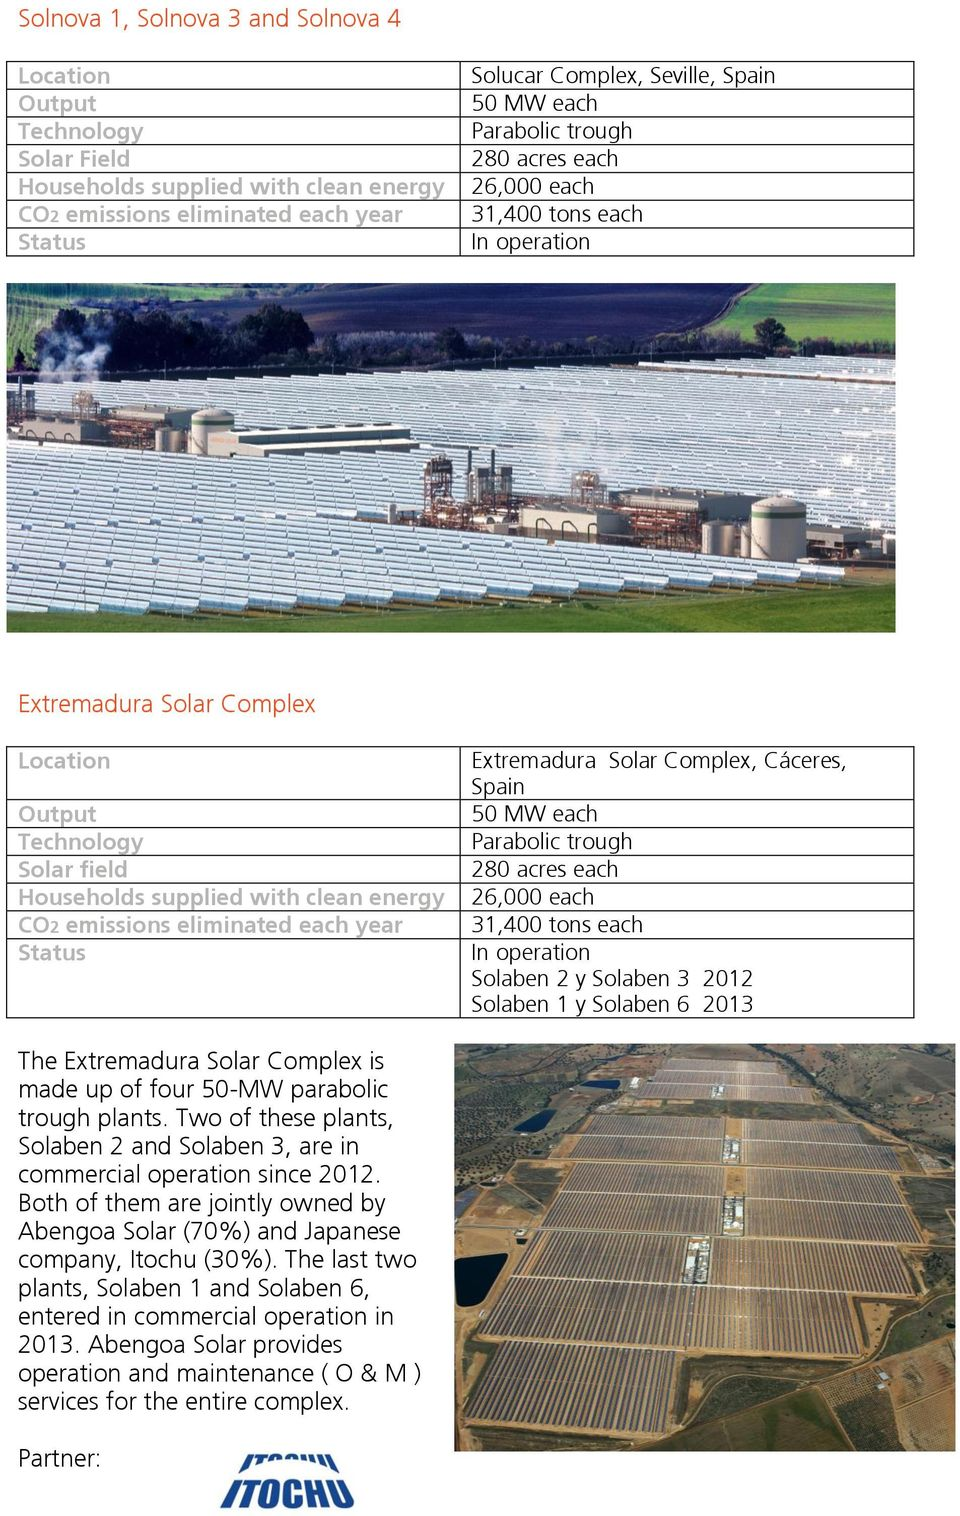 Extremadura Solar Complex is made up of four 50-MW parabolic trough plants. Two of these plants, Solaben 2 and Solaben 3, are in commercial operation since 2012.